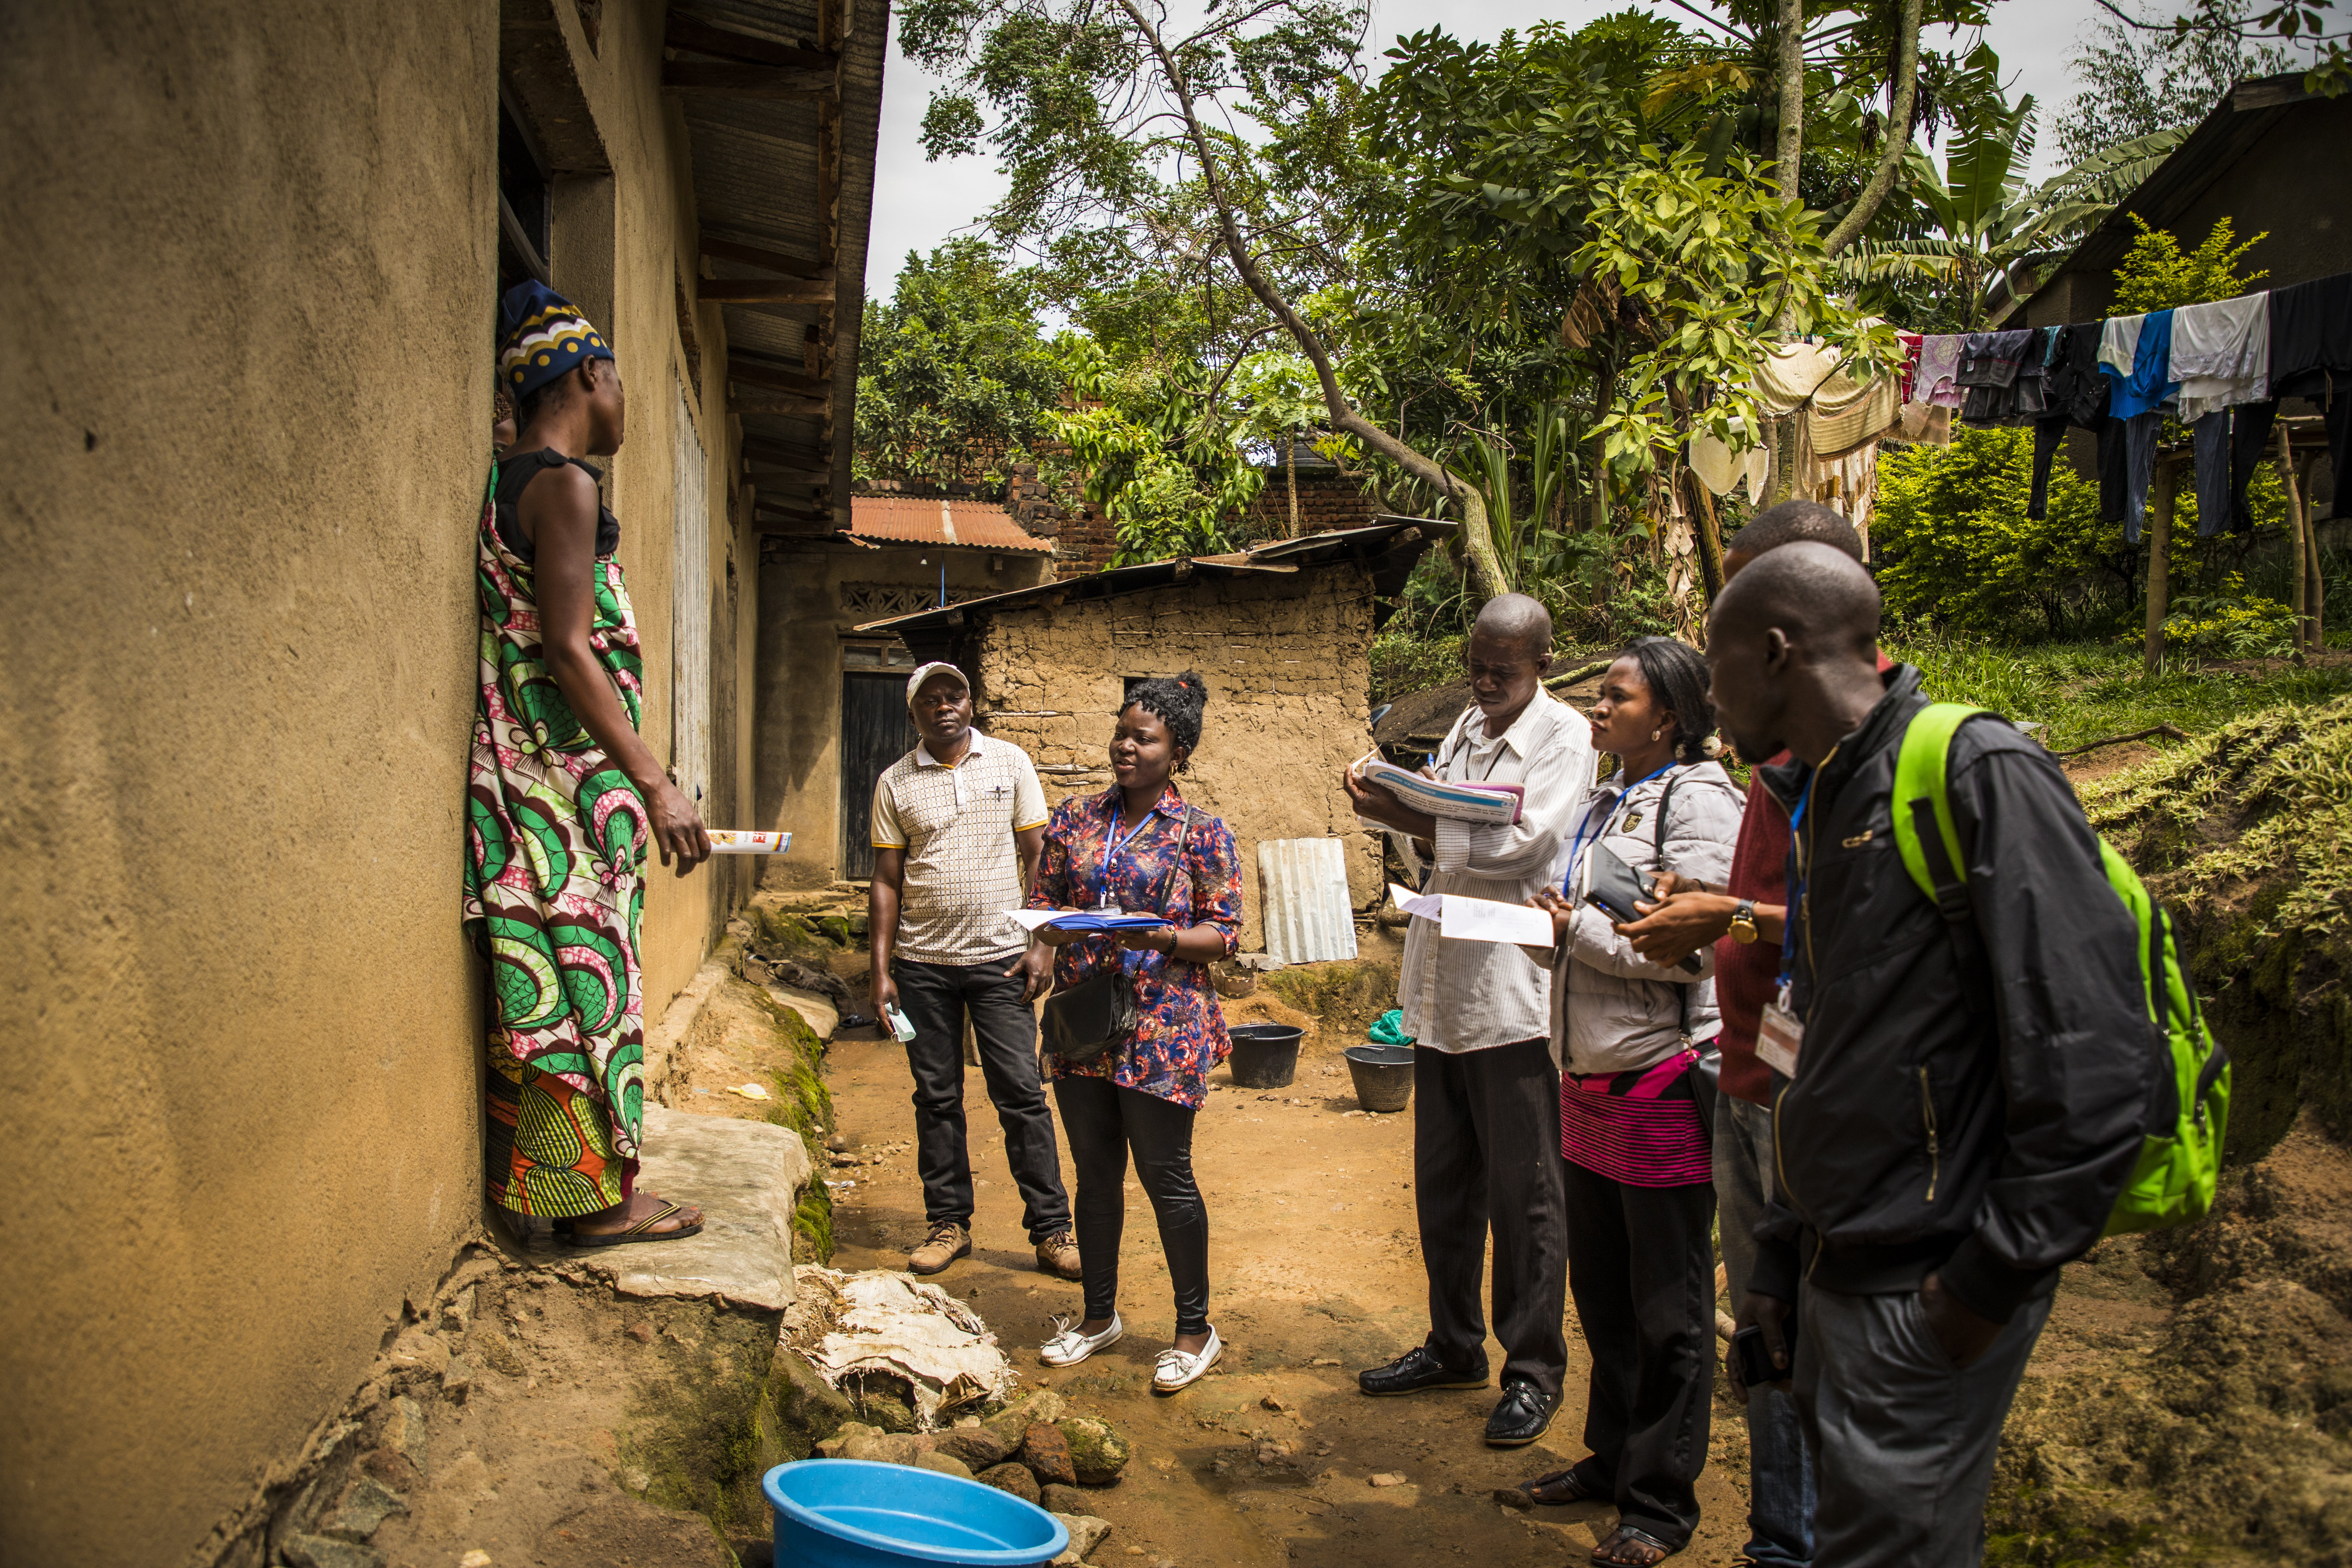 Community representatives visit a family on the outskirts of Beni, DRC to raise awareness about Ebola